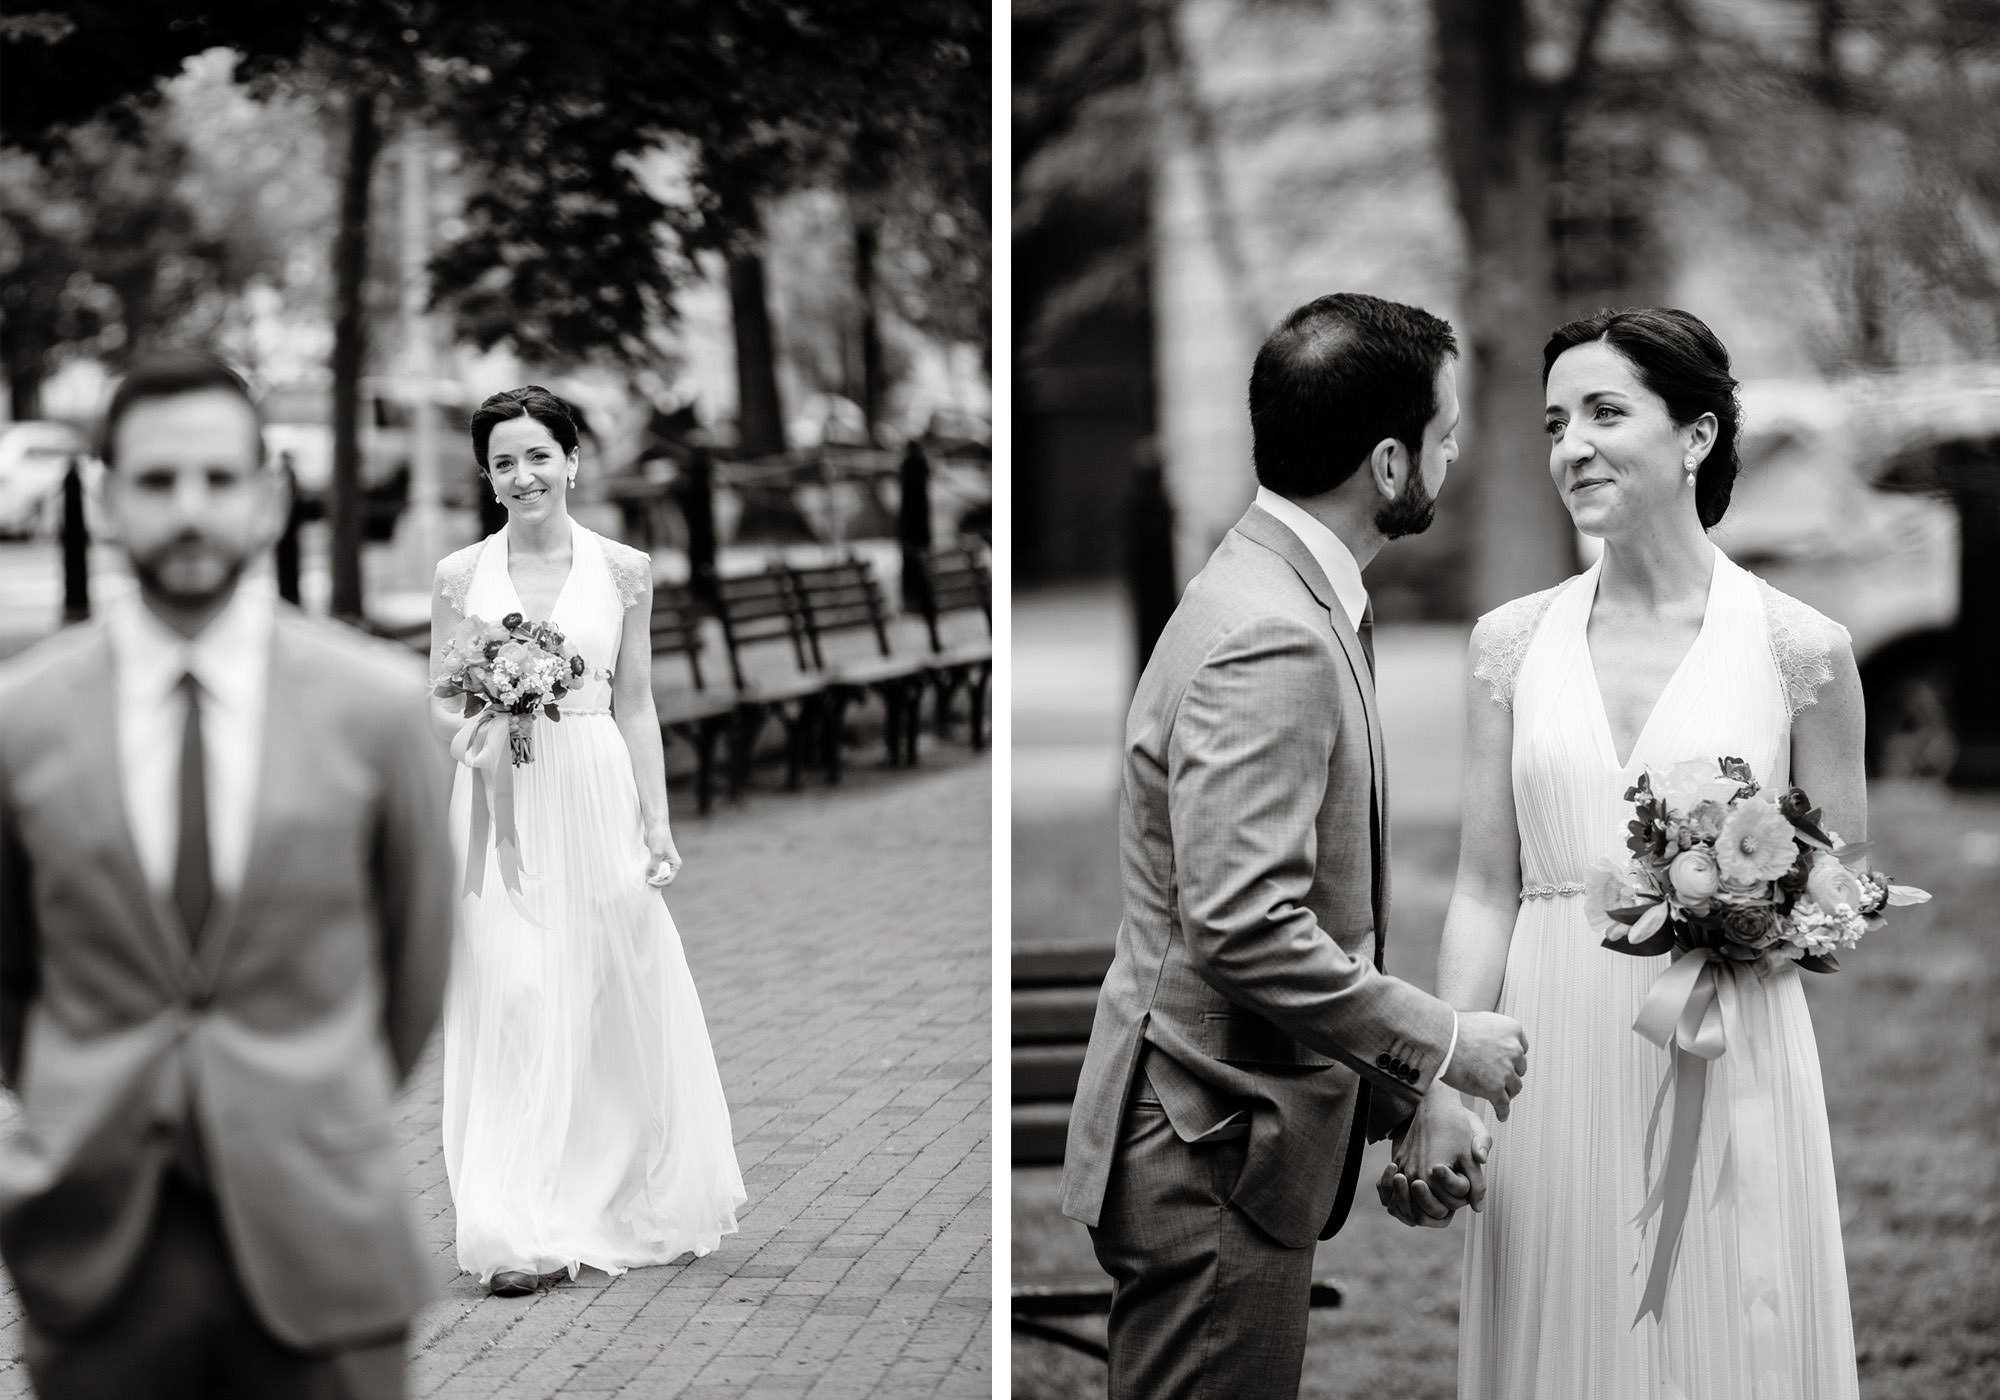 The bride and groom share their First Look in Lafayette Park in Washington, DC